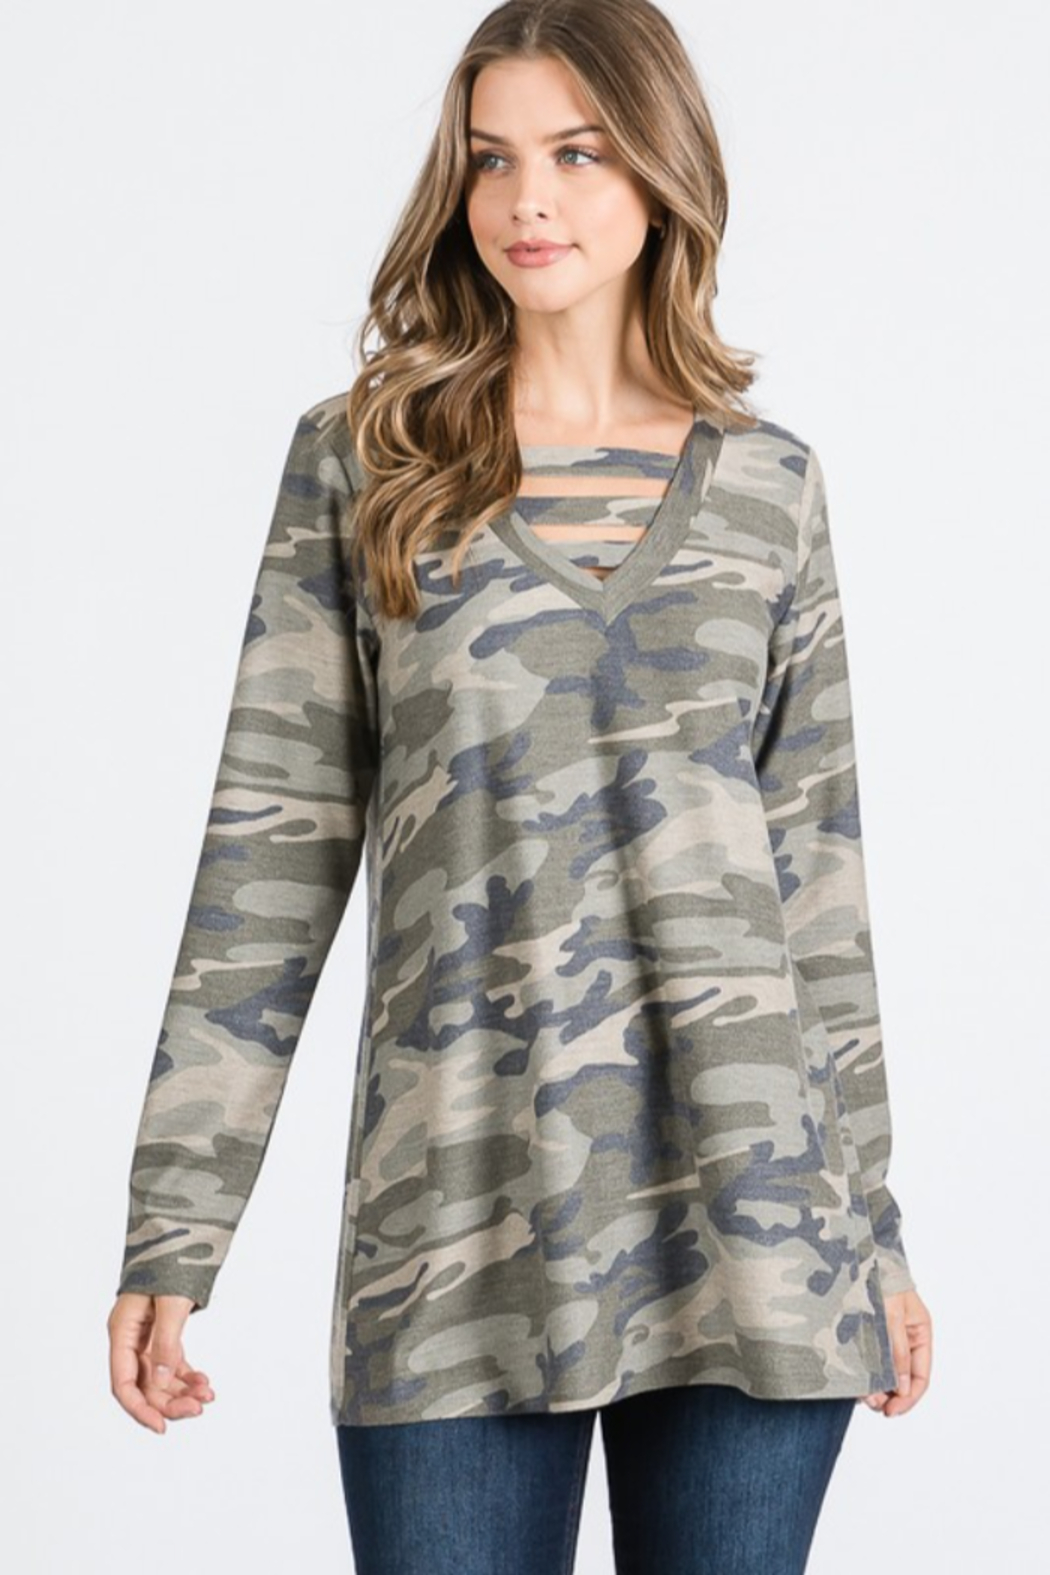 Heimish Caged V Neck Camo Top - Main Image